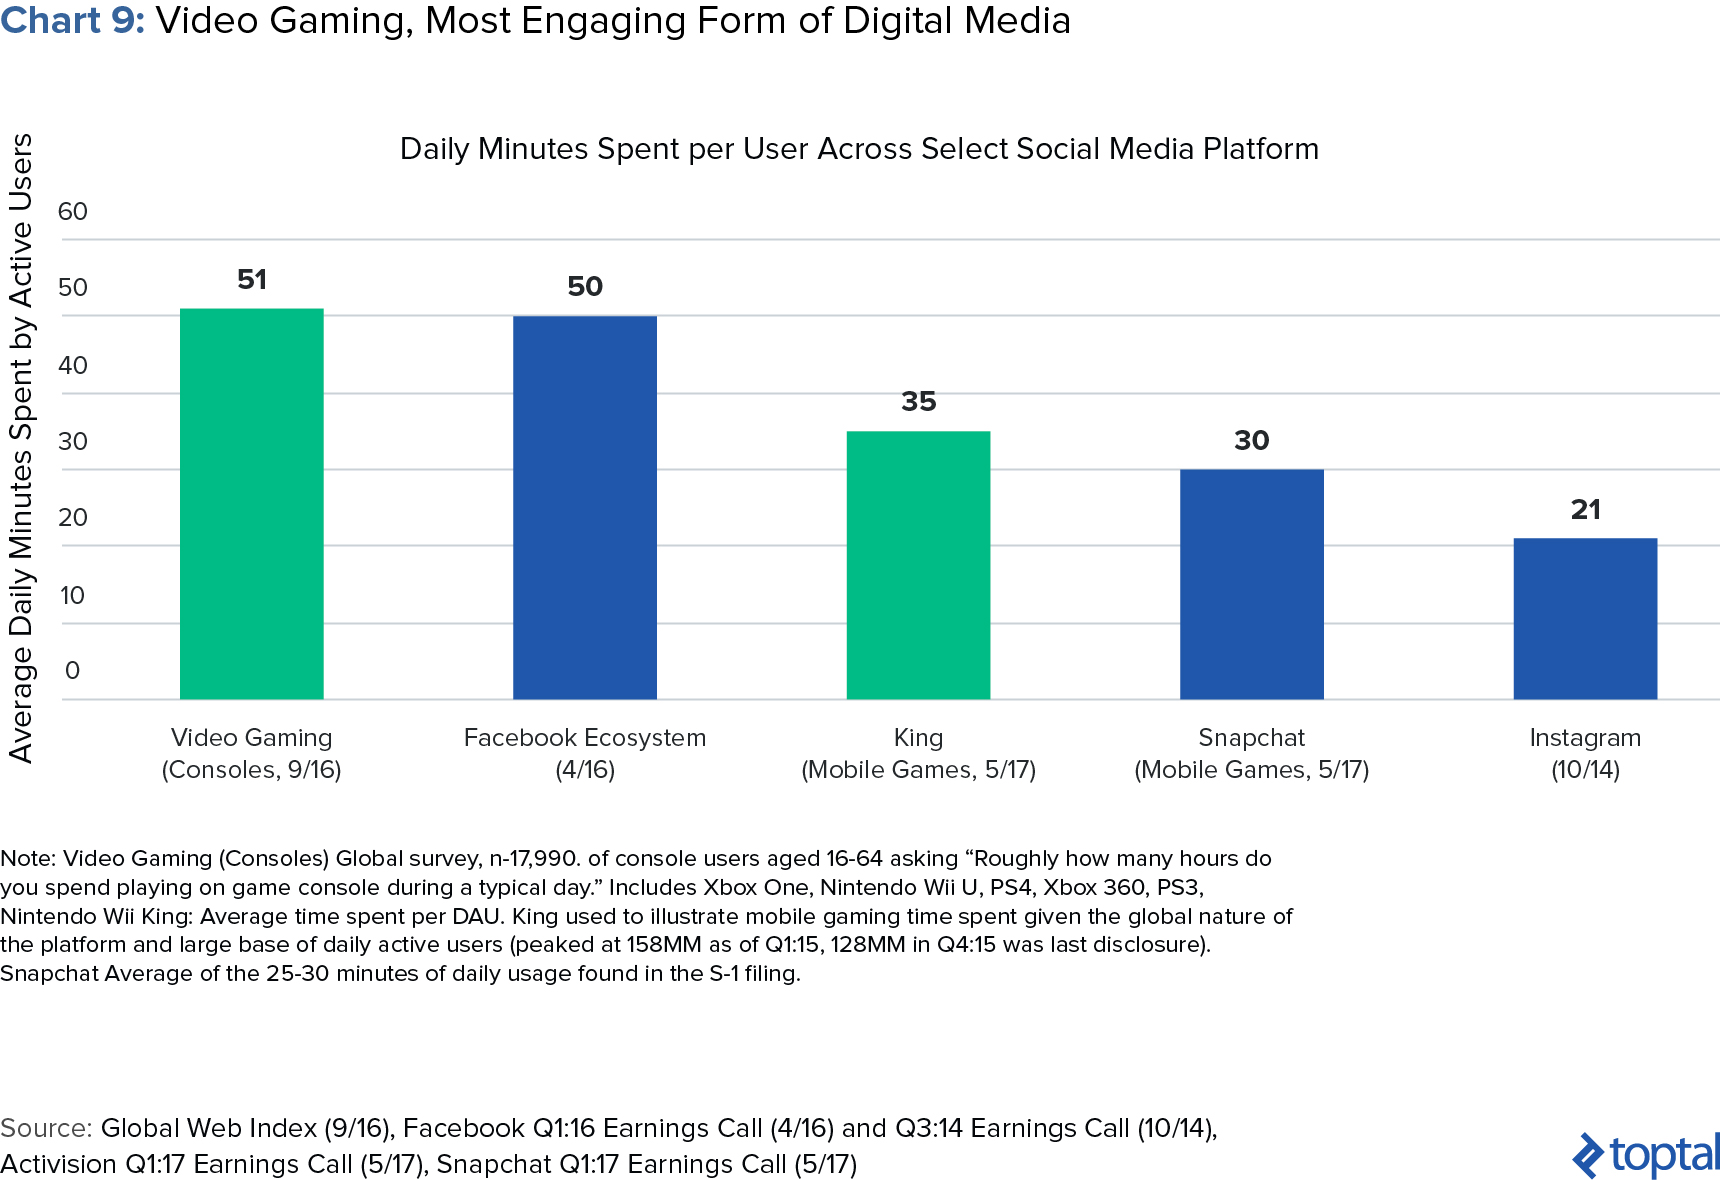 Chart 9: Video Gaming, Most Engaging Form of Digital Media